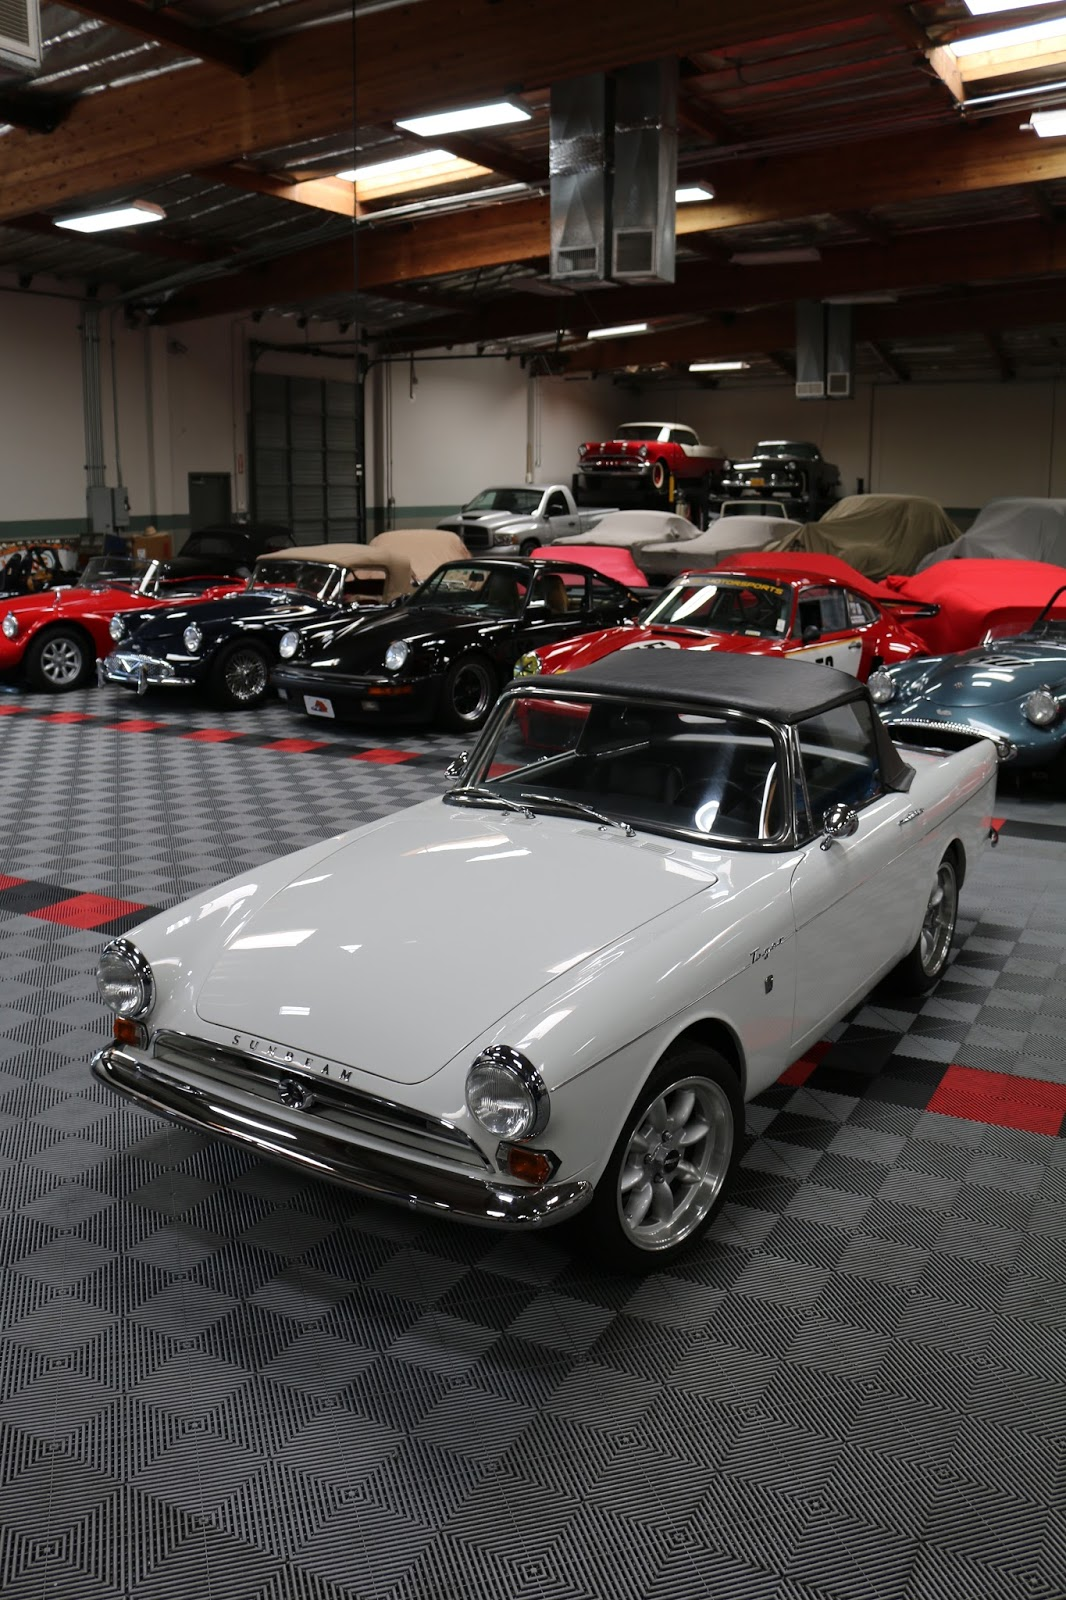 Every Type of Car